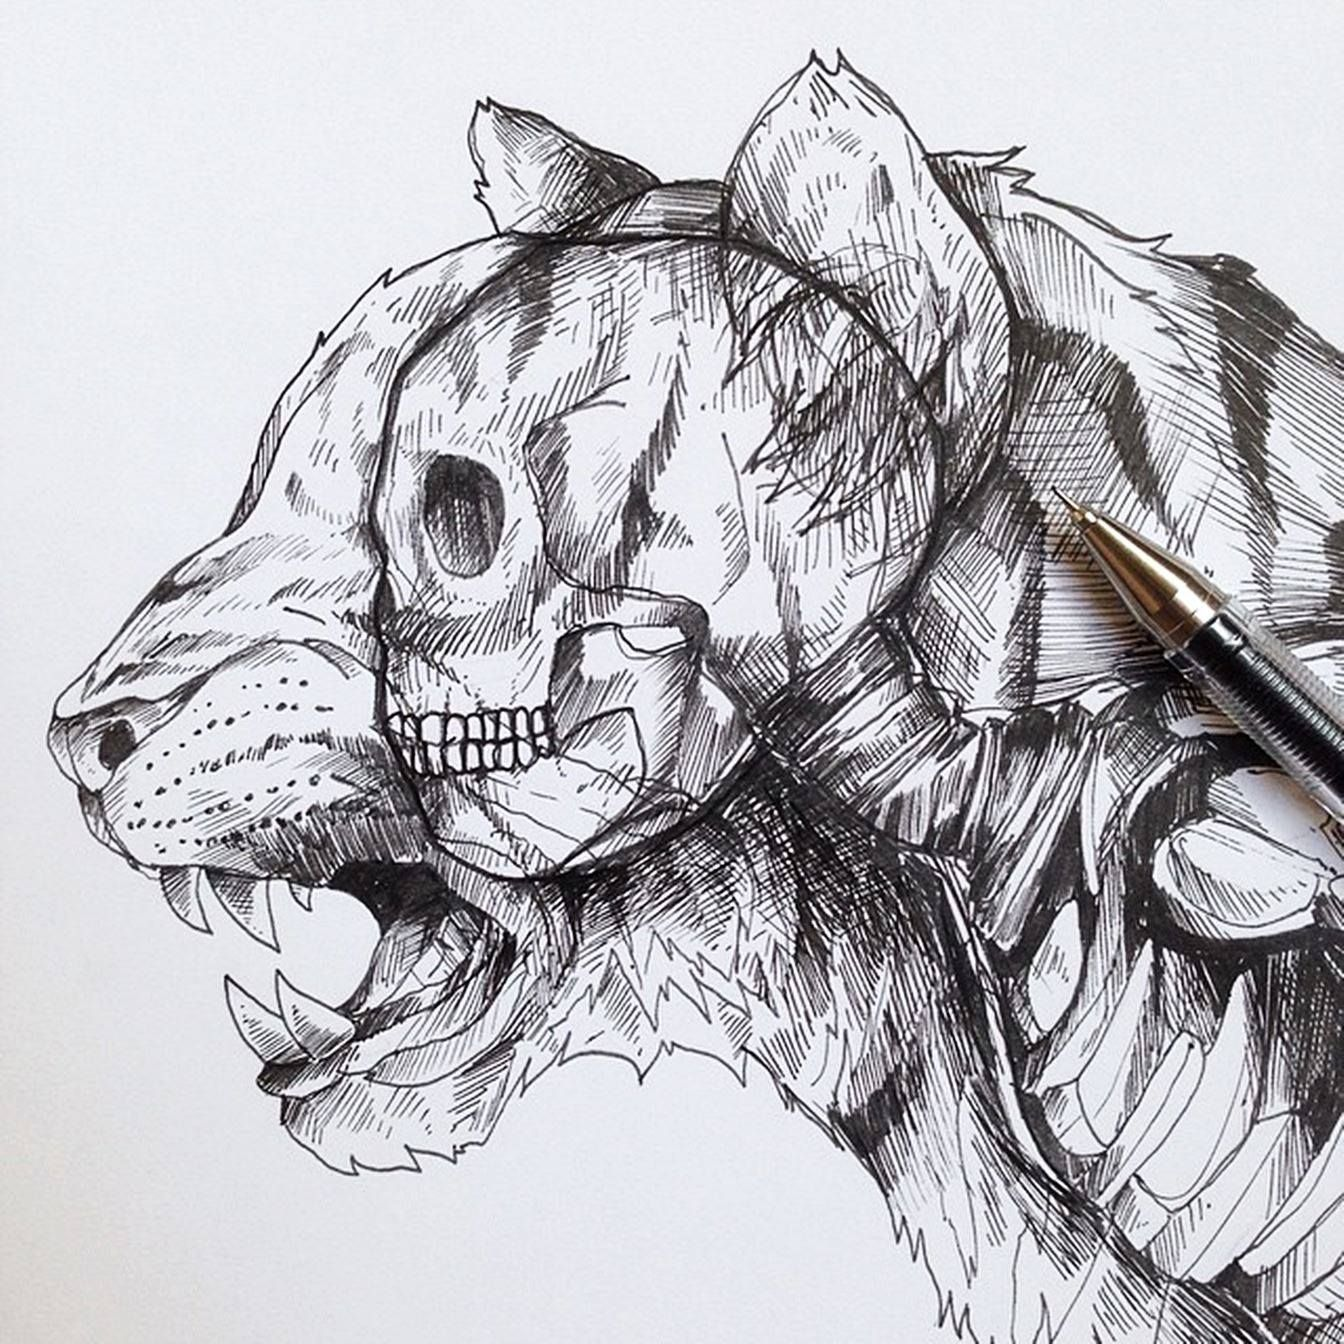 Awesome drawings by alfred basha